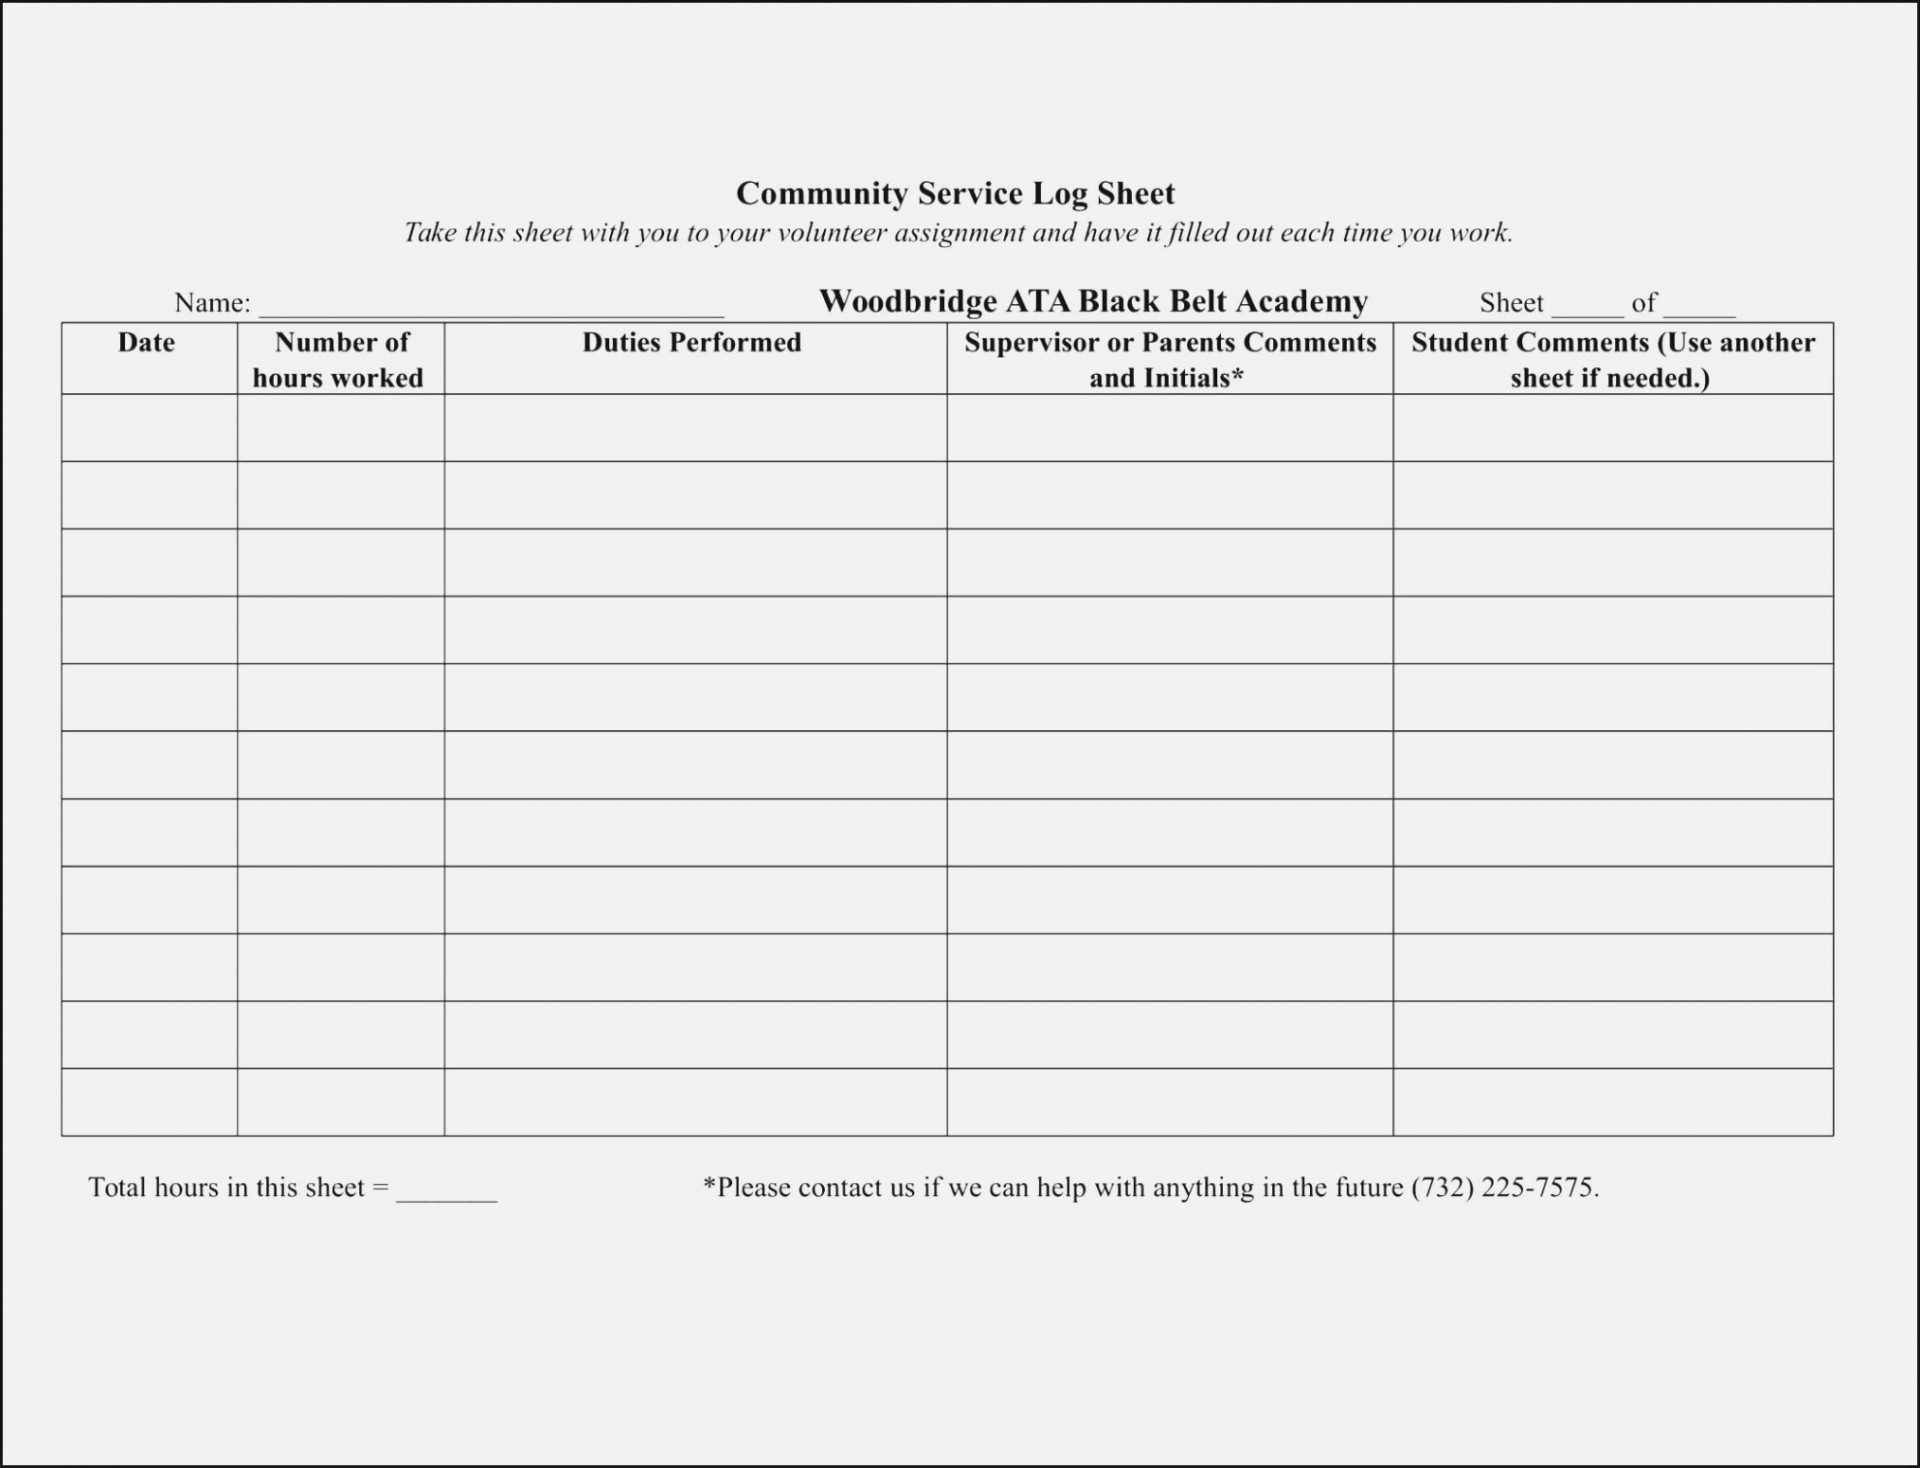 025 Volunteer Sign Up Form Template Sheet Templates Ideas In Community Service Template Word